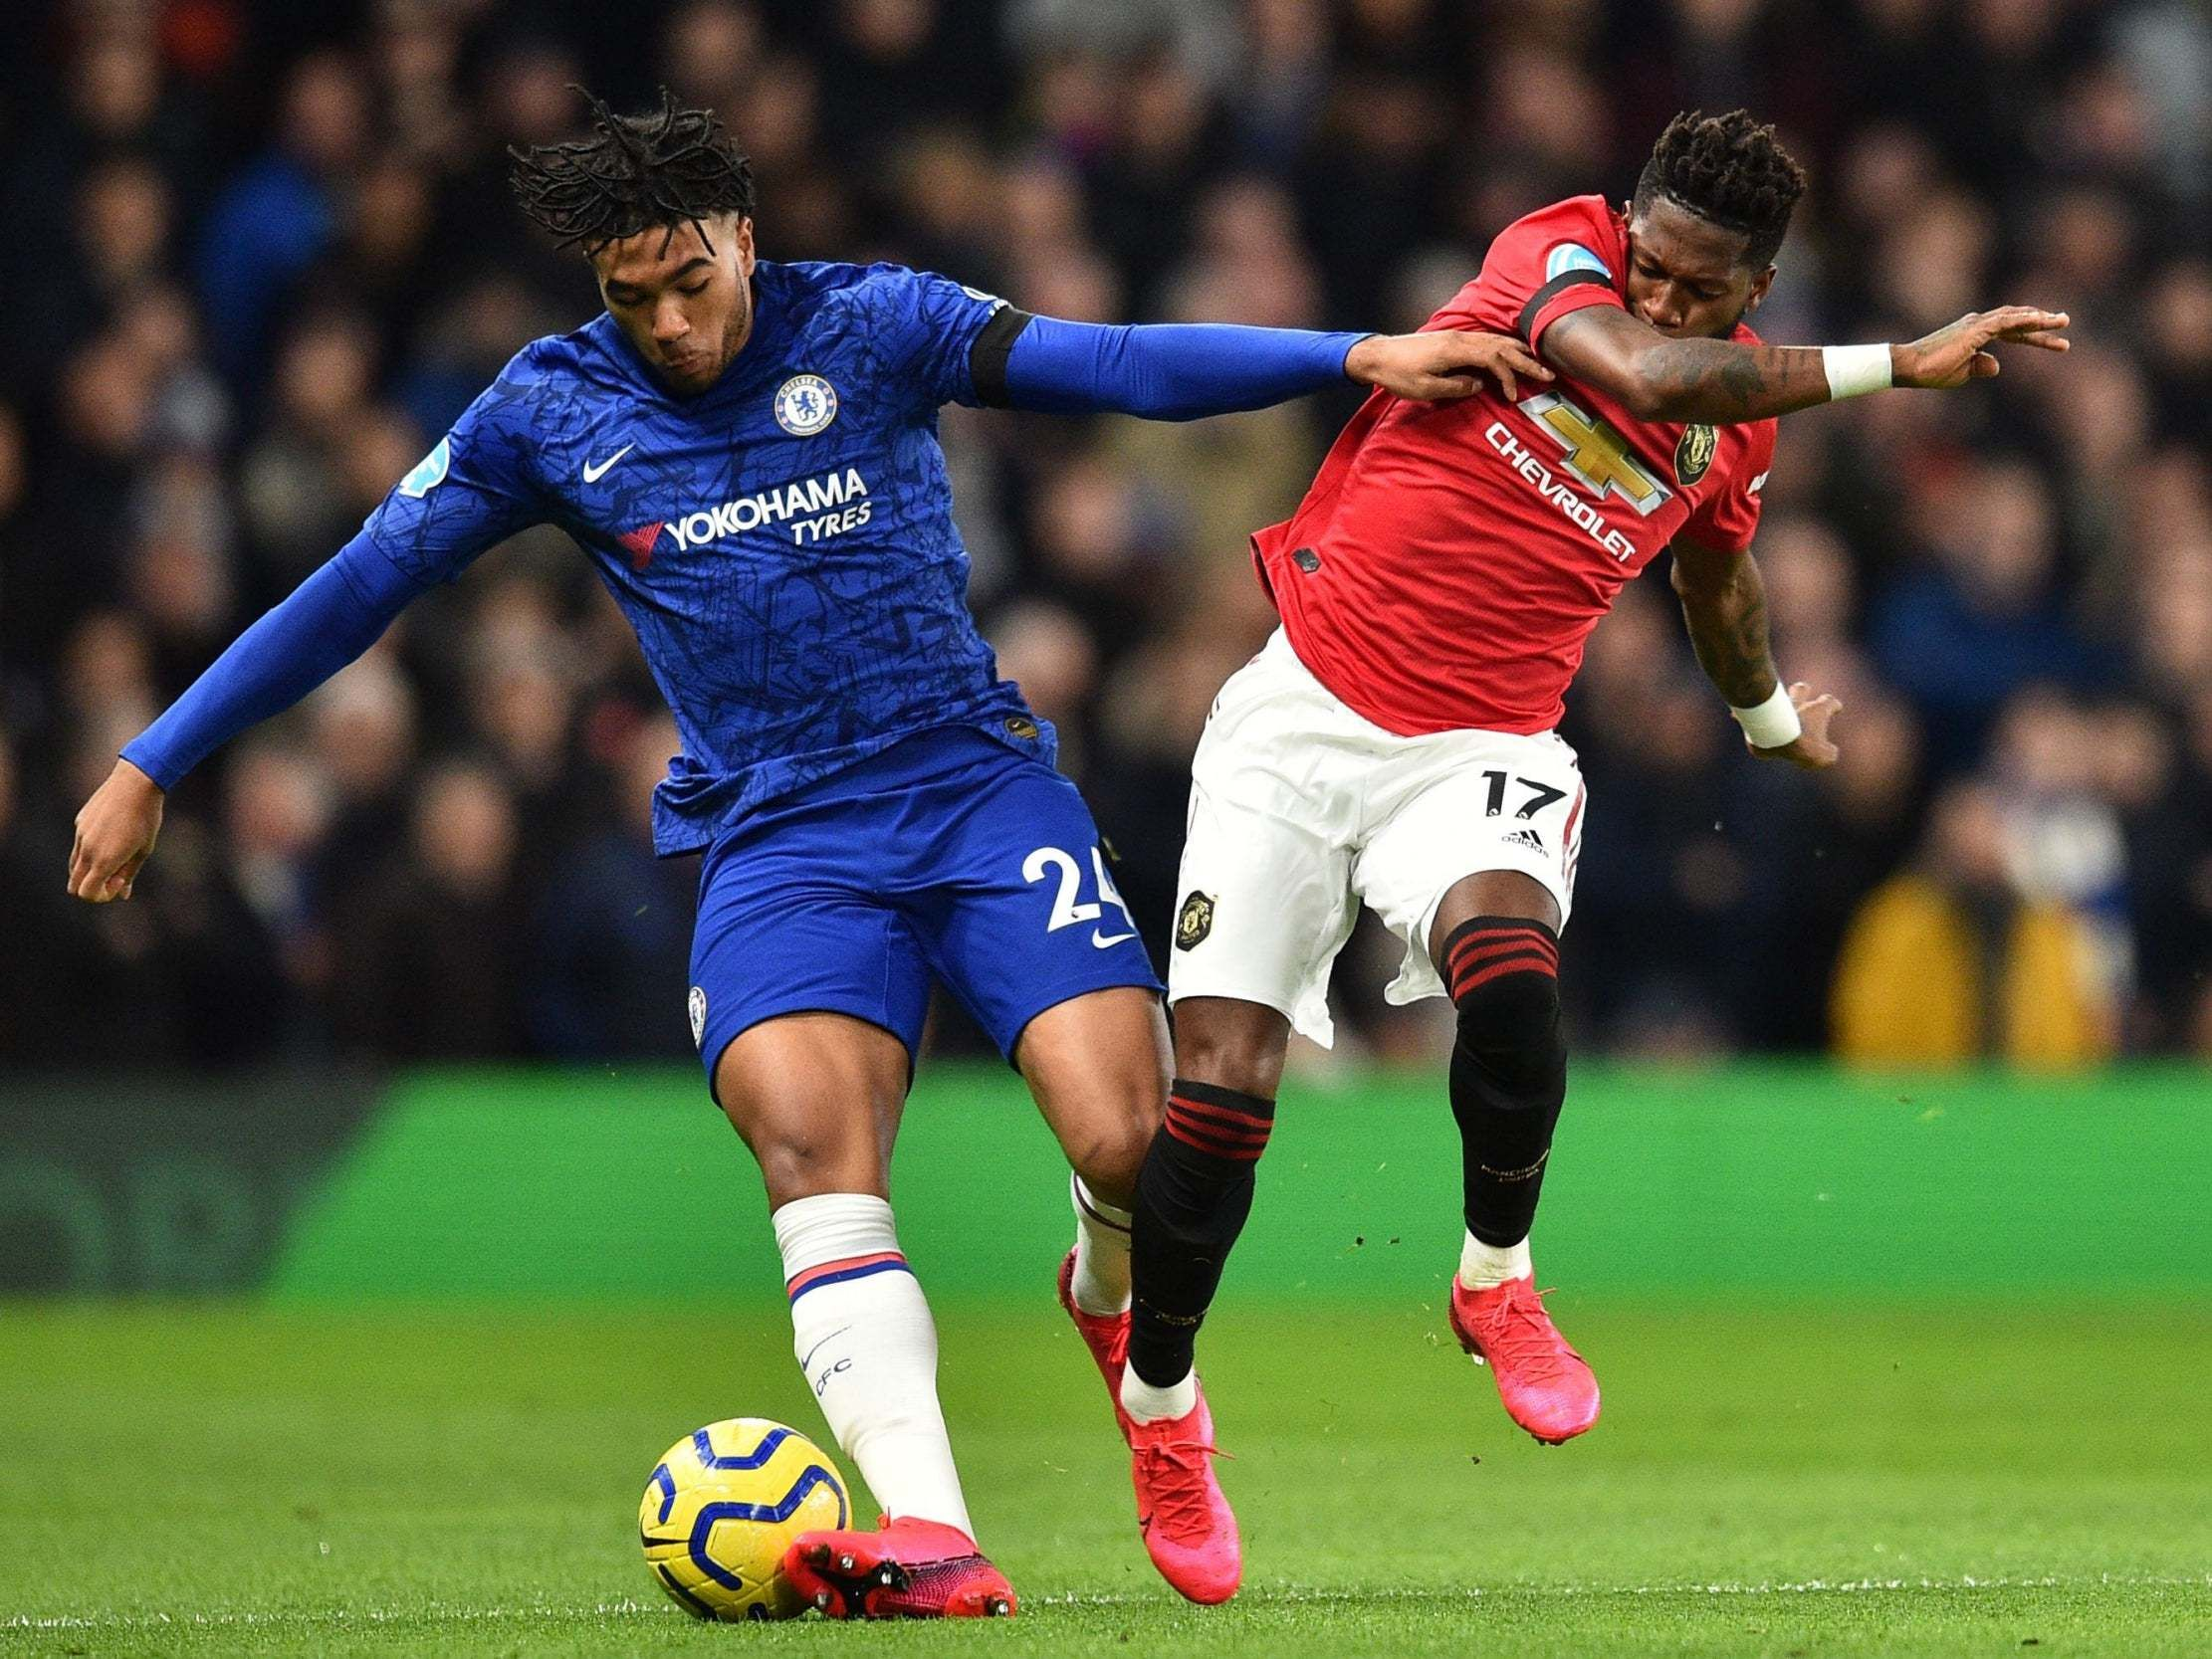 Chelsea Vs Manchester United Live Latest Premier League Updates Tonight In 2020 Manchester United Live Manchester United Manchester